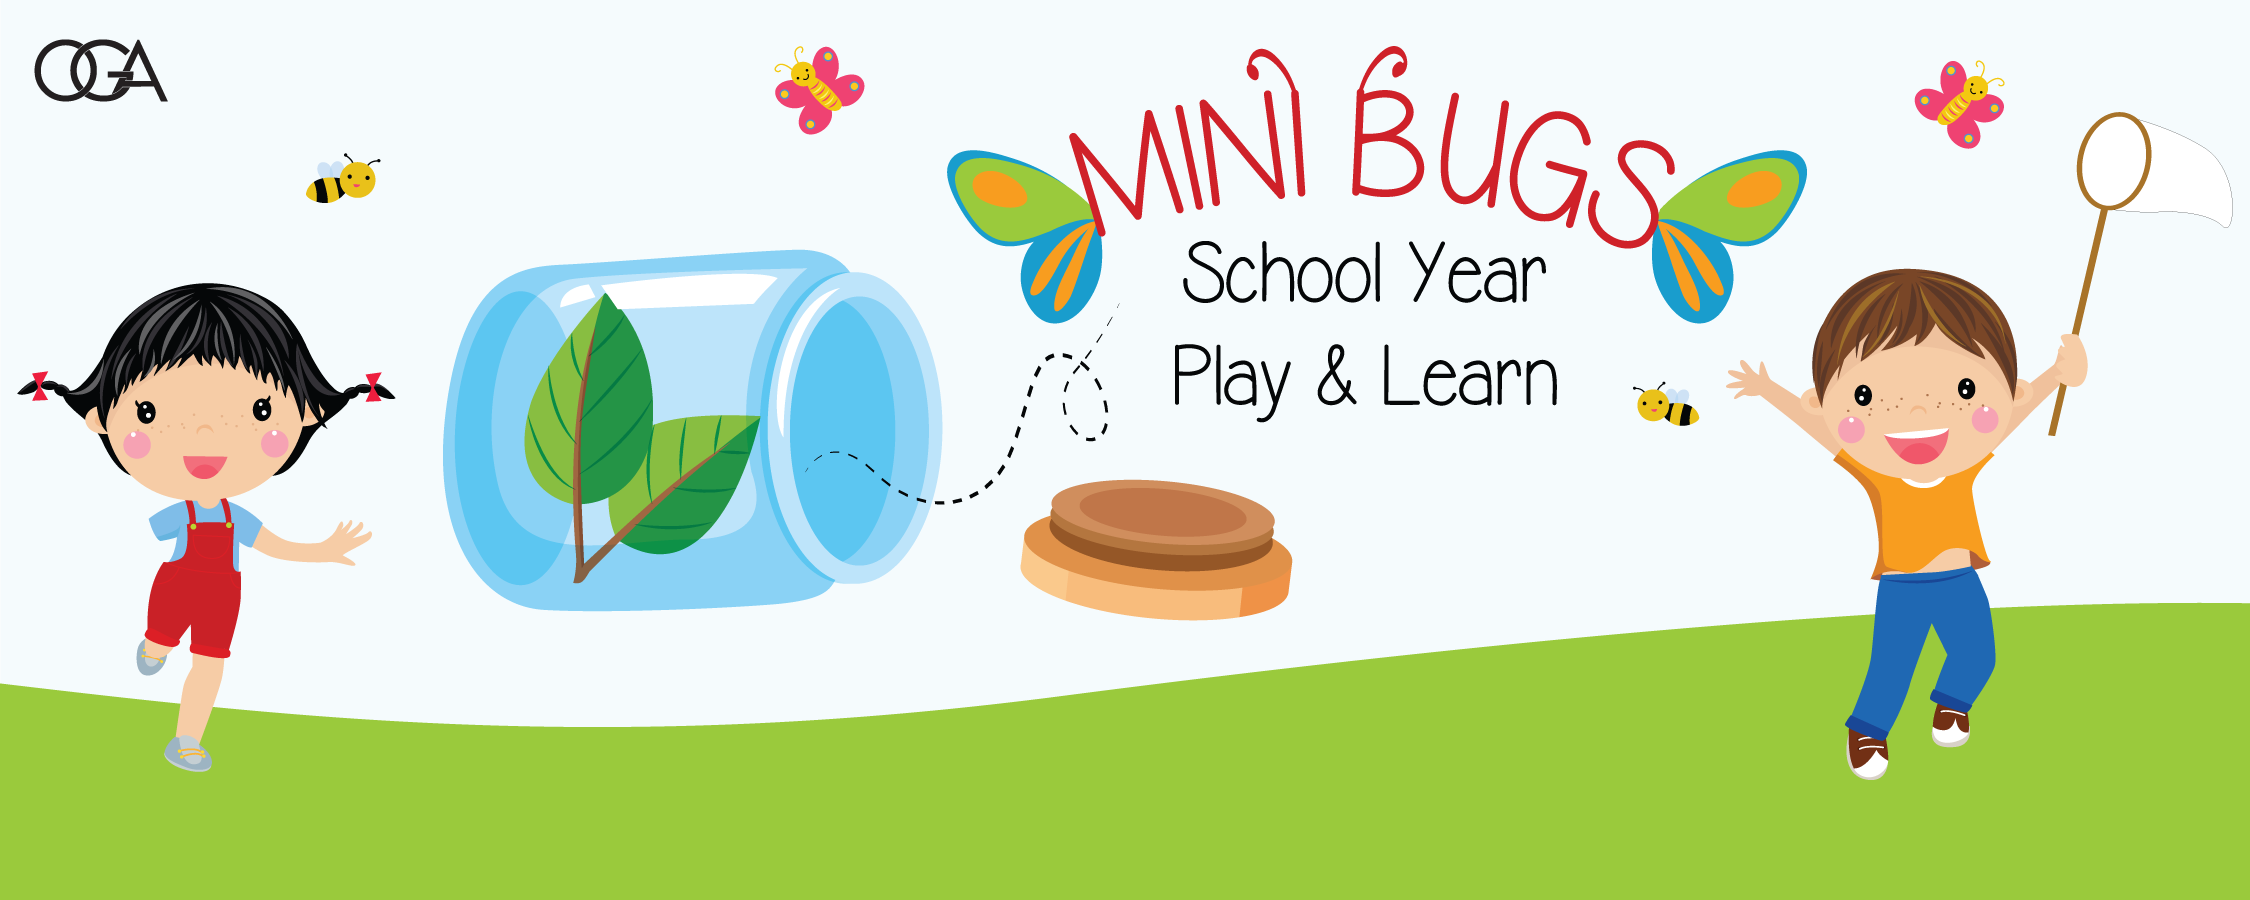 Mini Bugs School Year Play and Learn